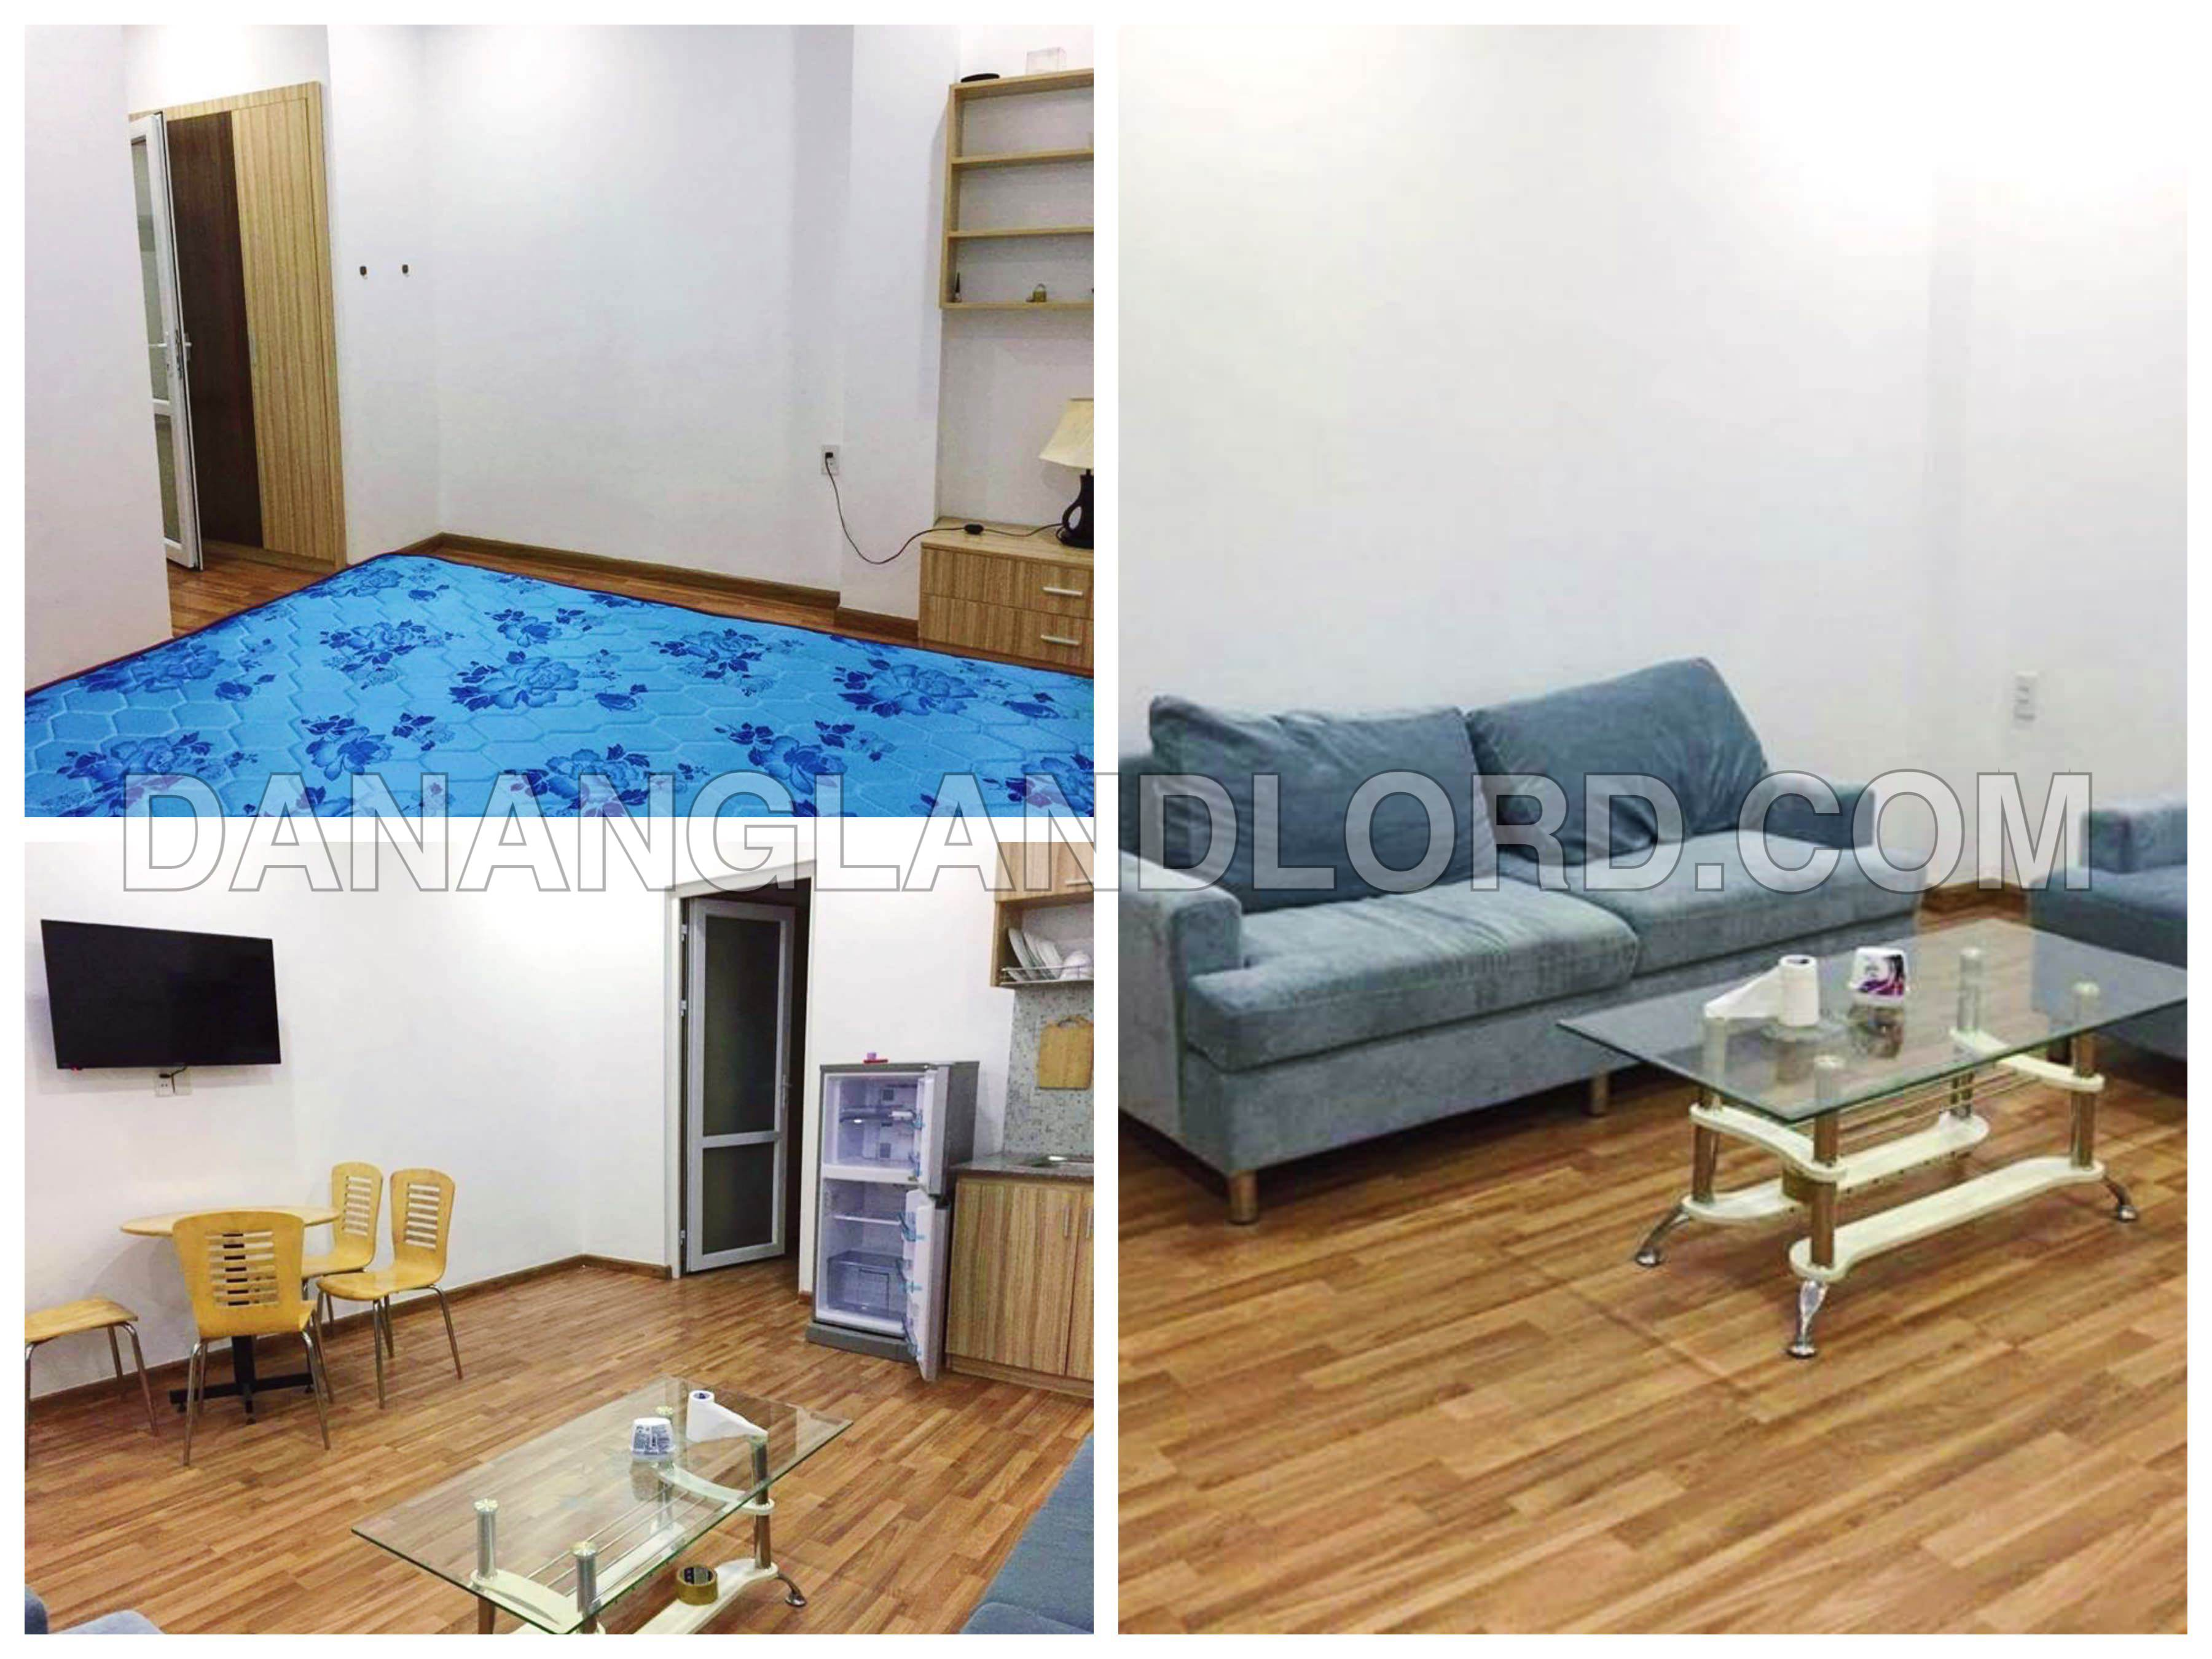 The nice apartment with full furnitures in the central of Da Nang city